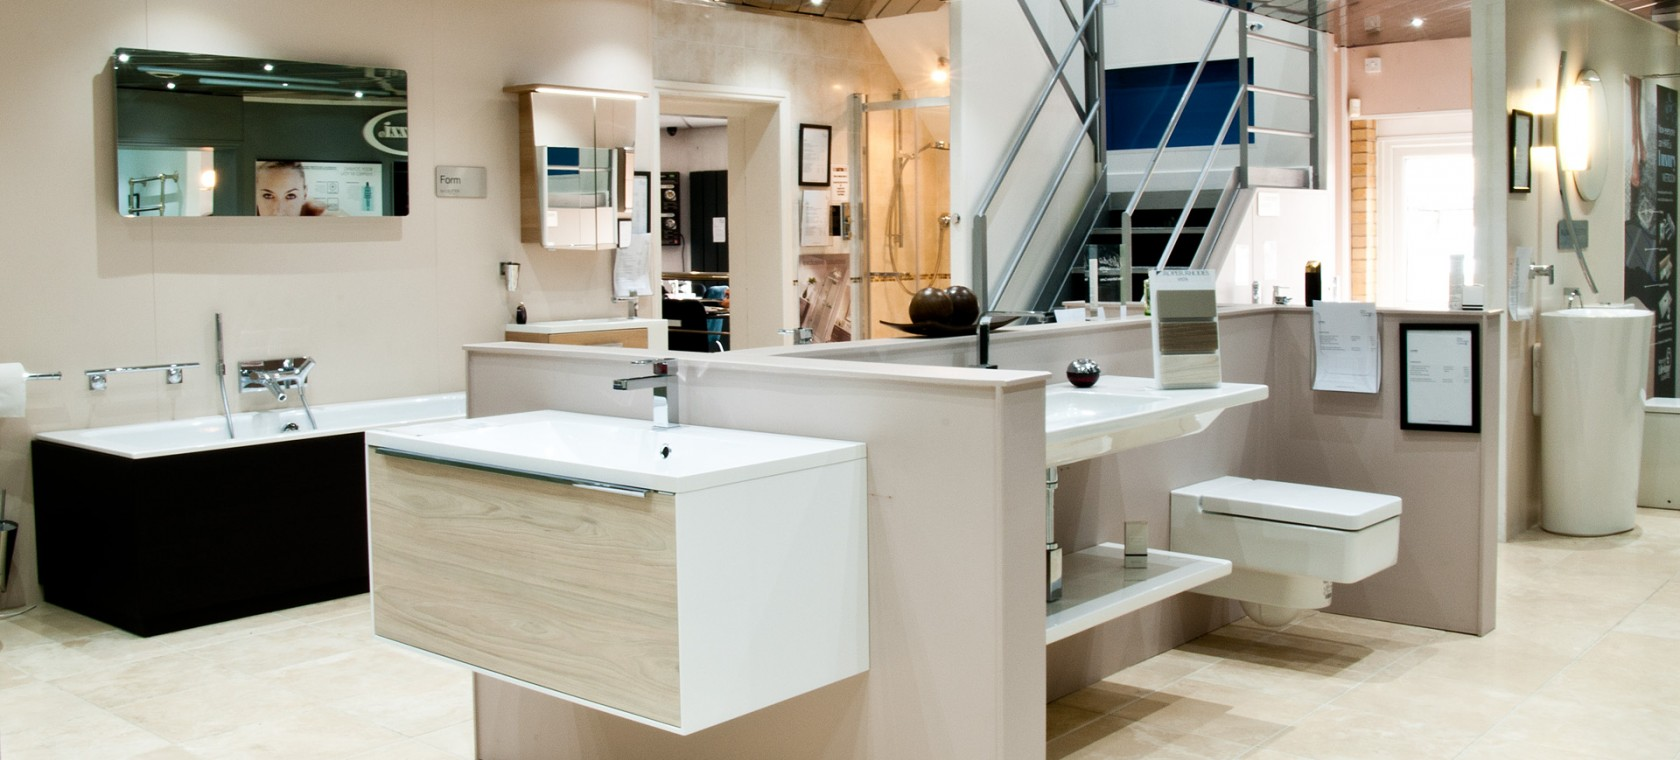 Bathtub Showroom 28 Images Better Bathrooms Showroom